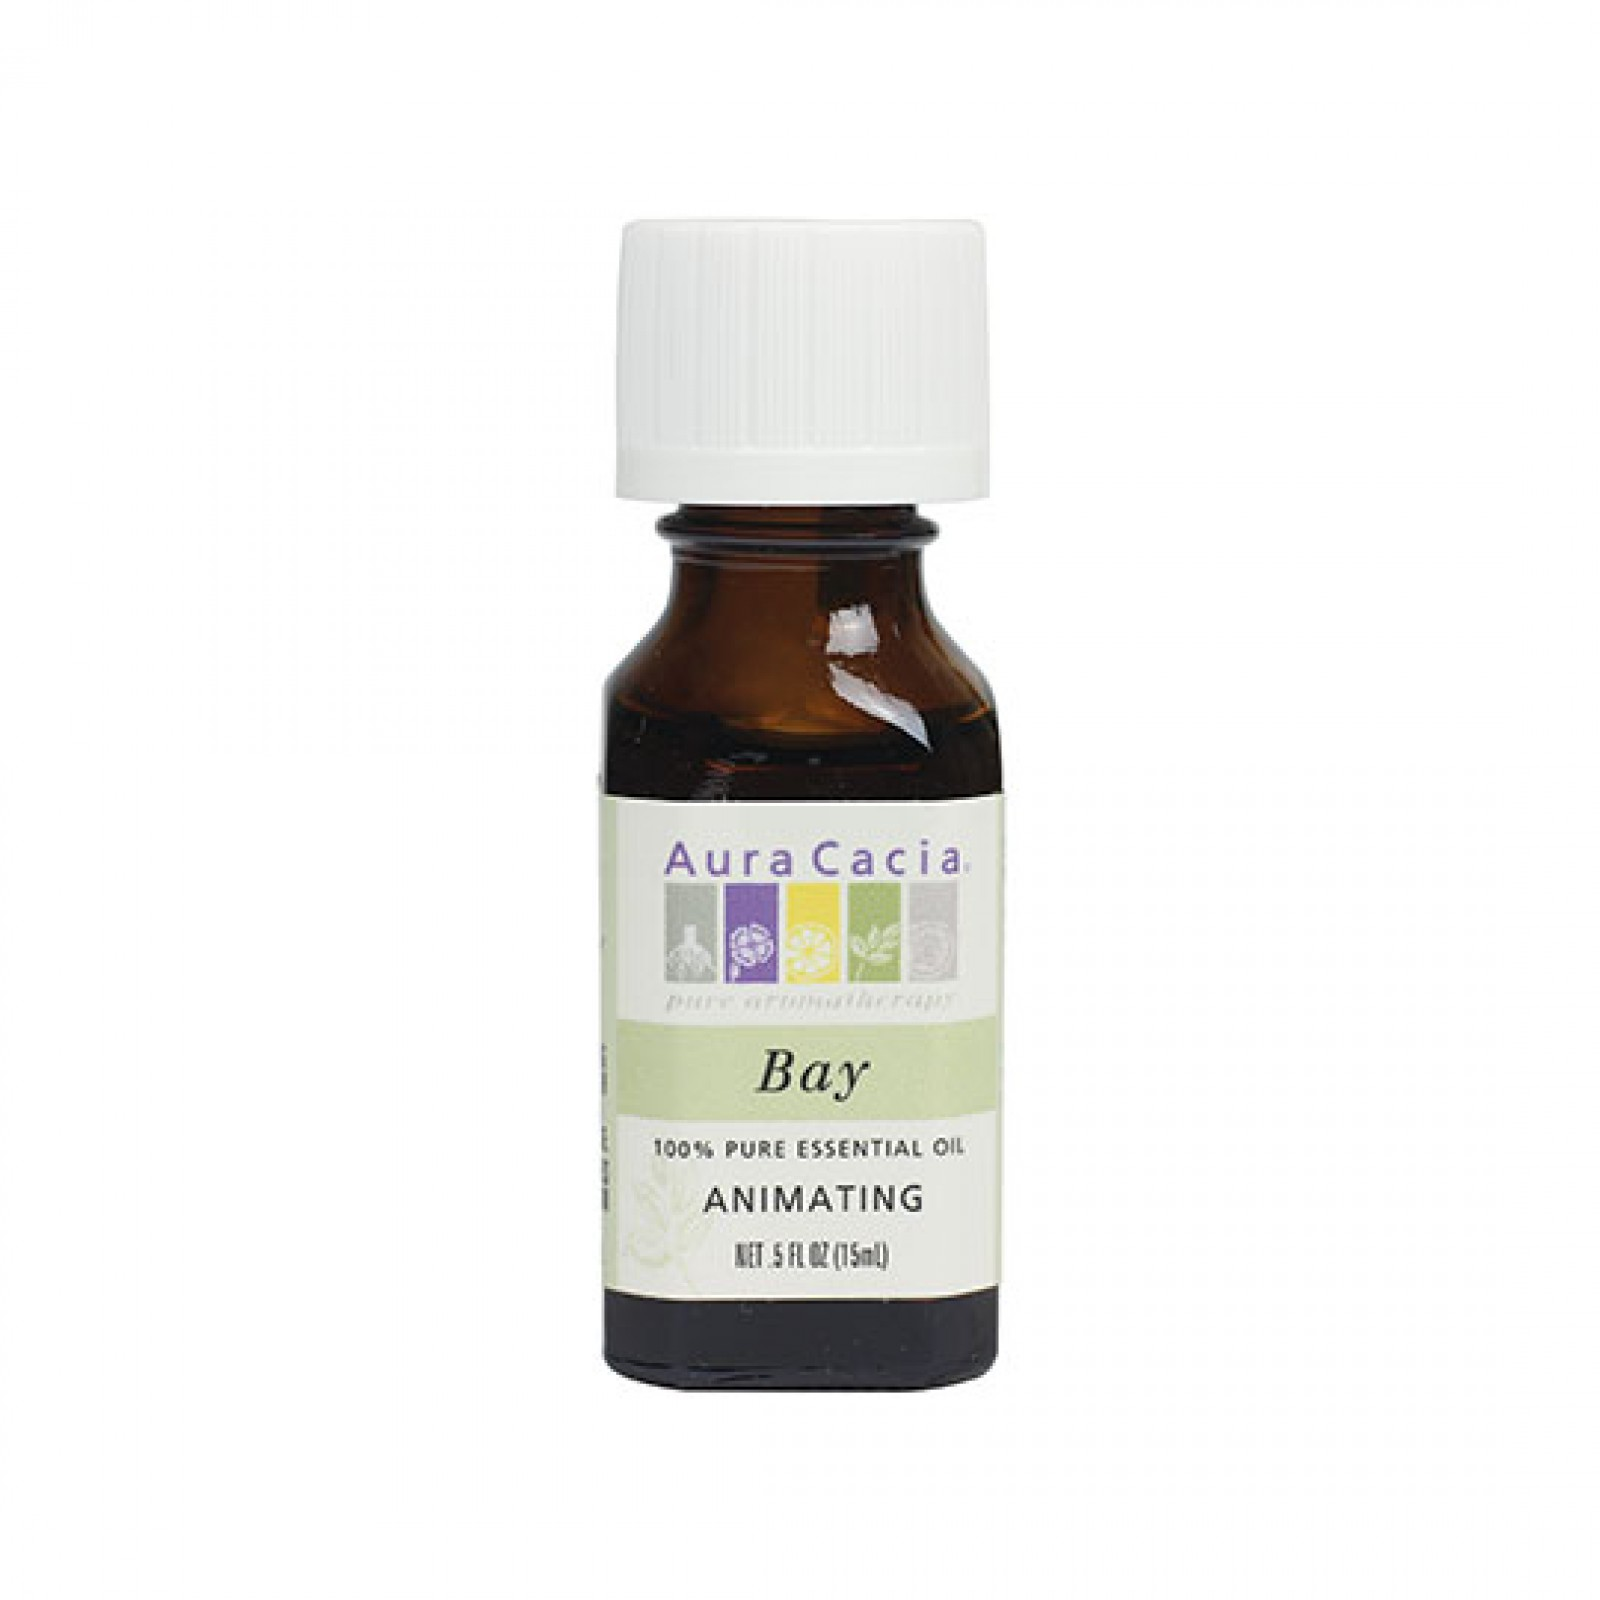 Aura Cacia Bay Essential Oil 0.5 fl. oz.